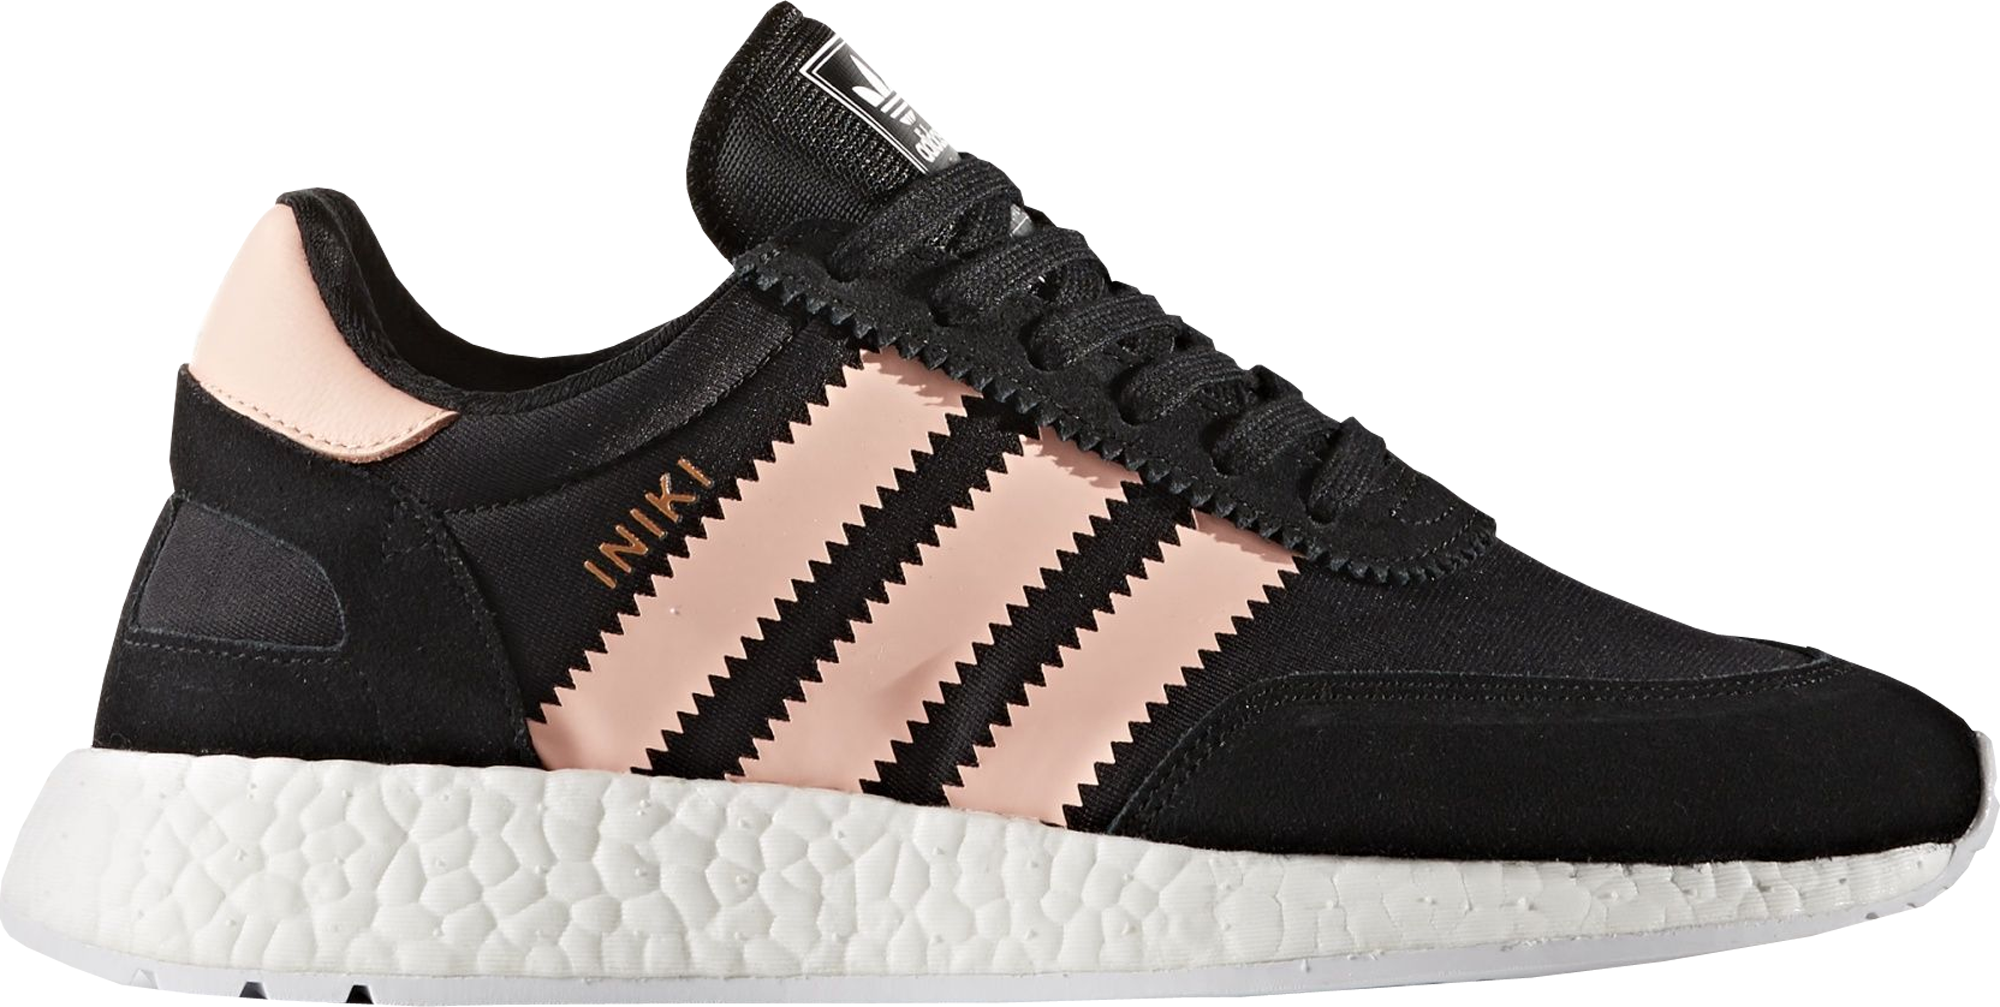 4412b36a767 adidas Iniki Runner Black Haze Coral (W) - StockX News